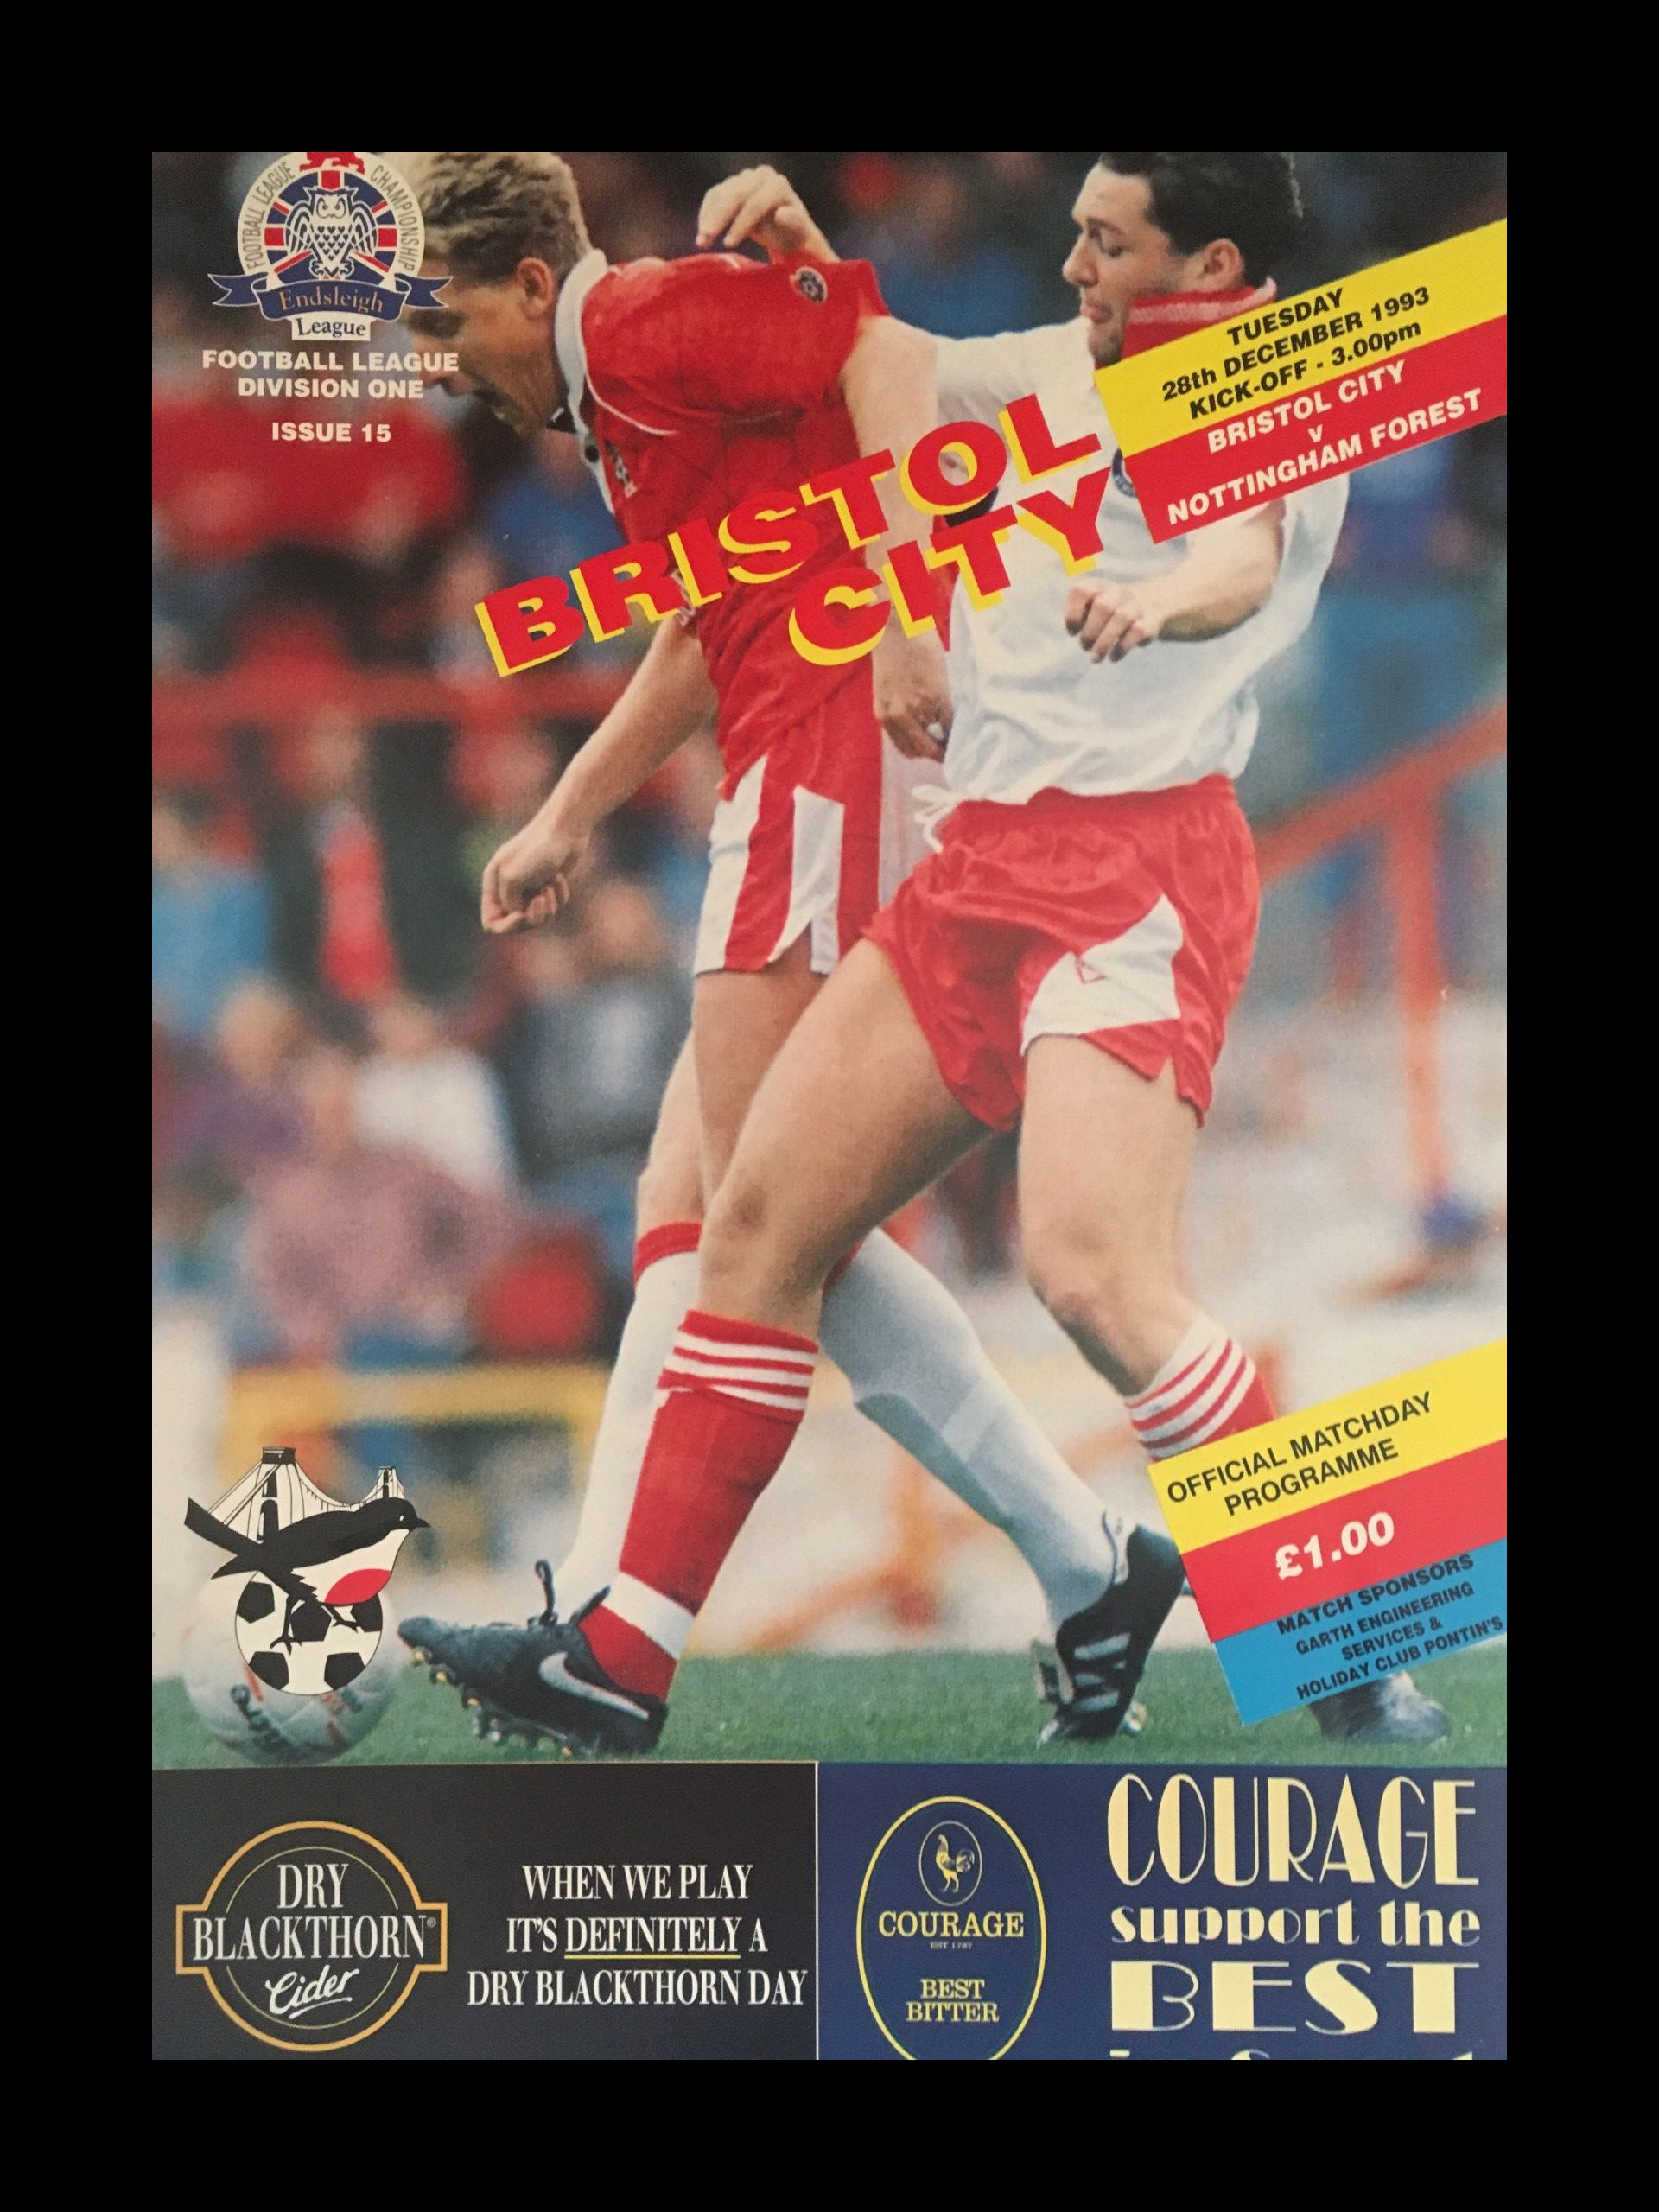 Bristol City v Nottingham Forest 28-12-1993 Programme